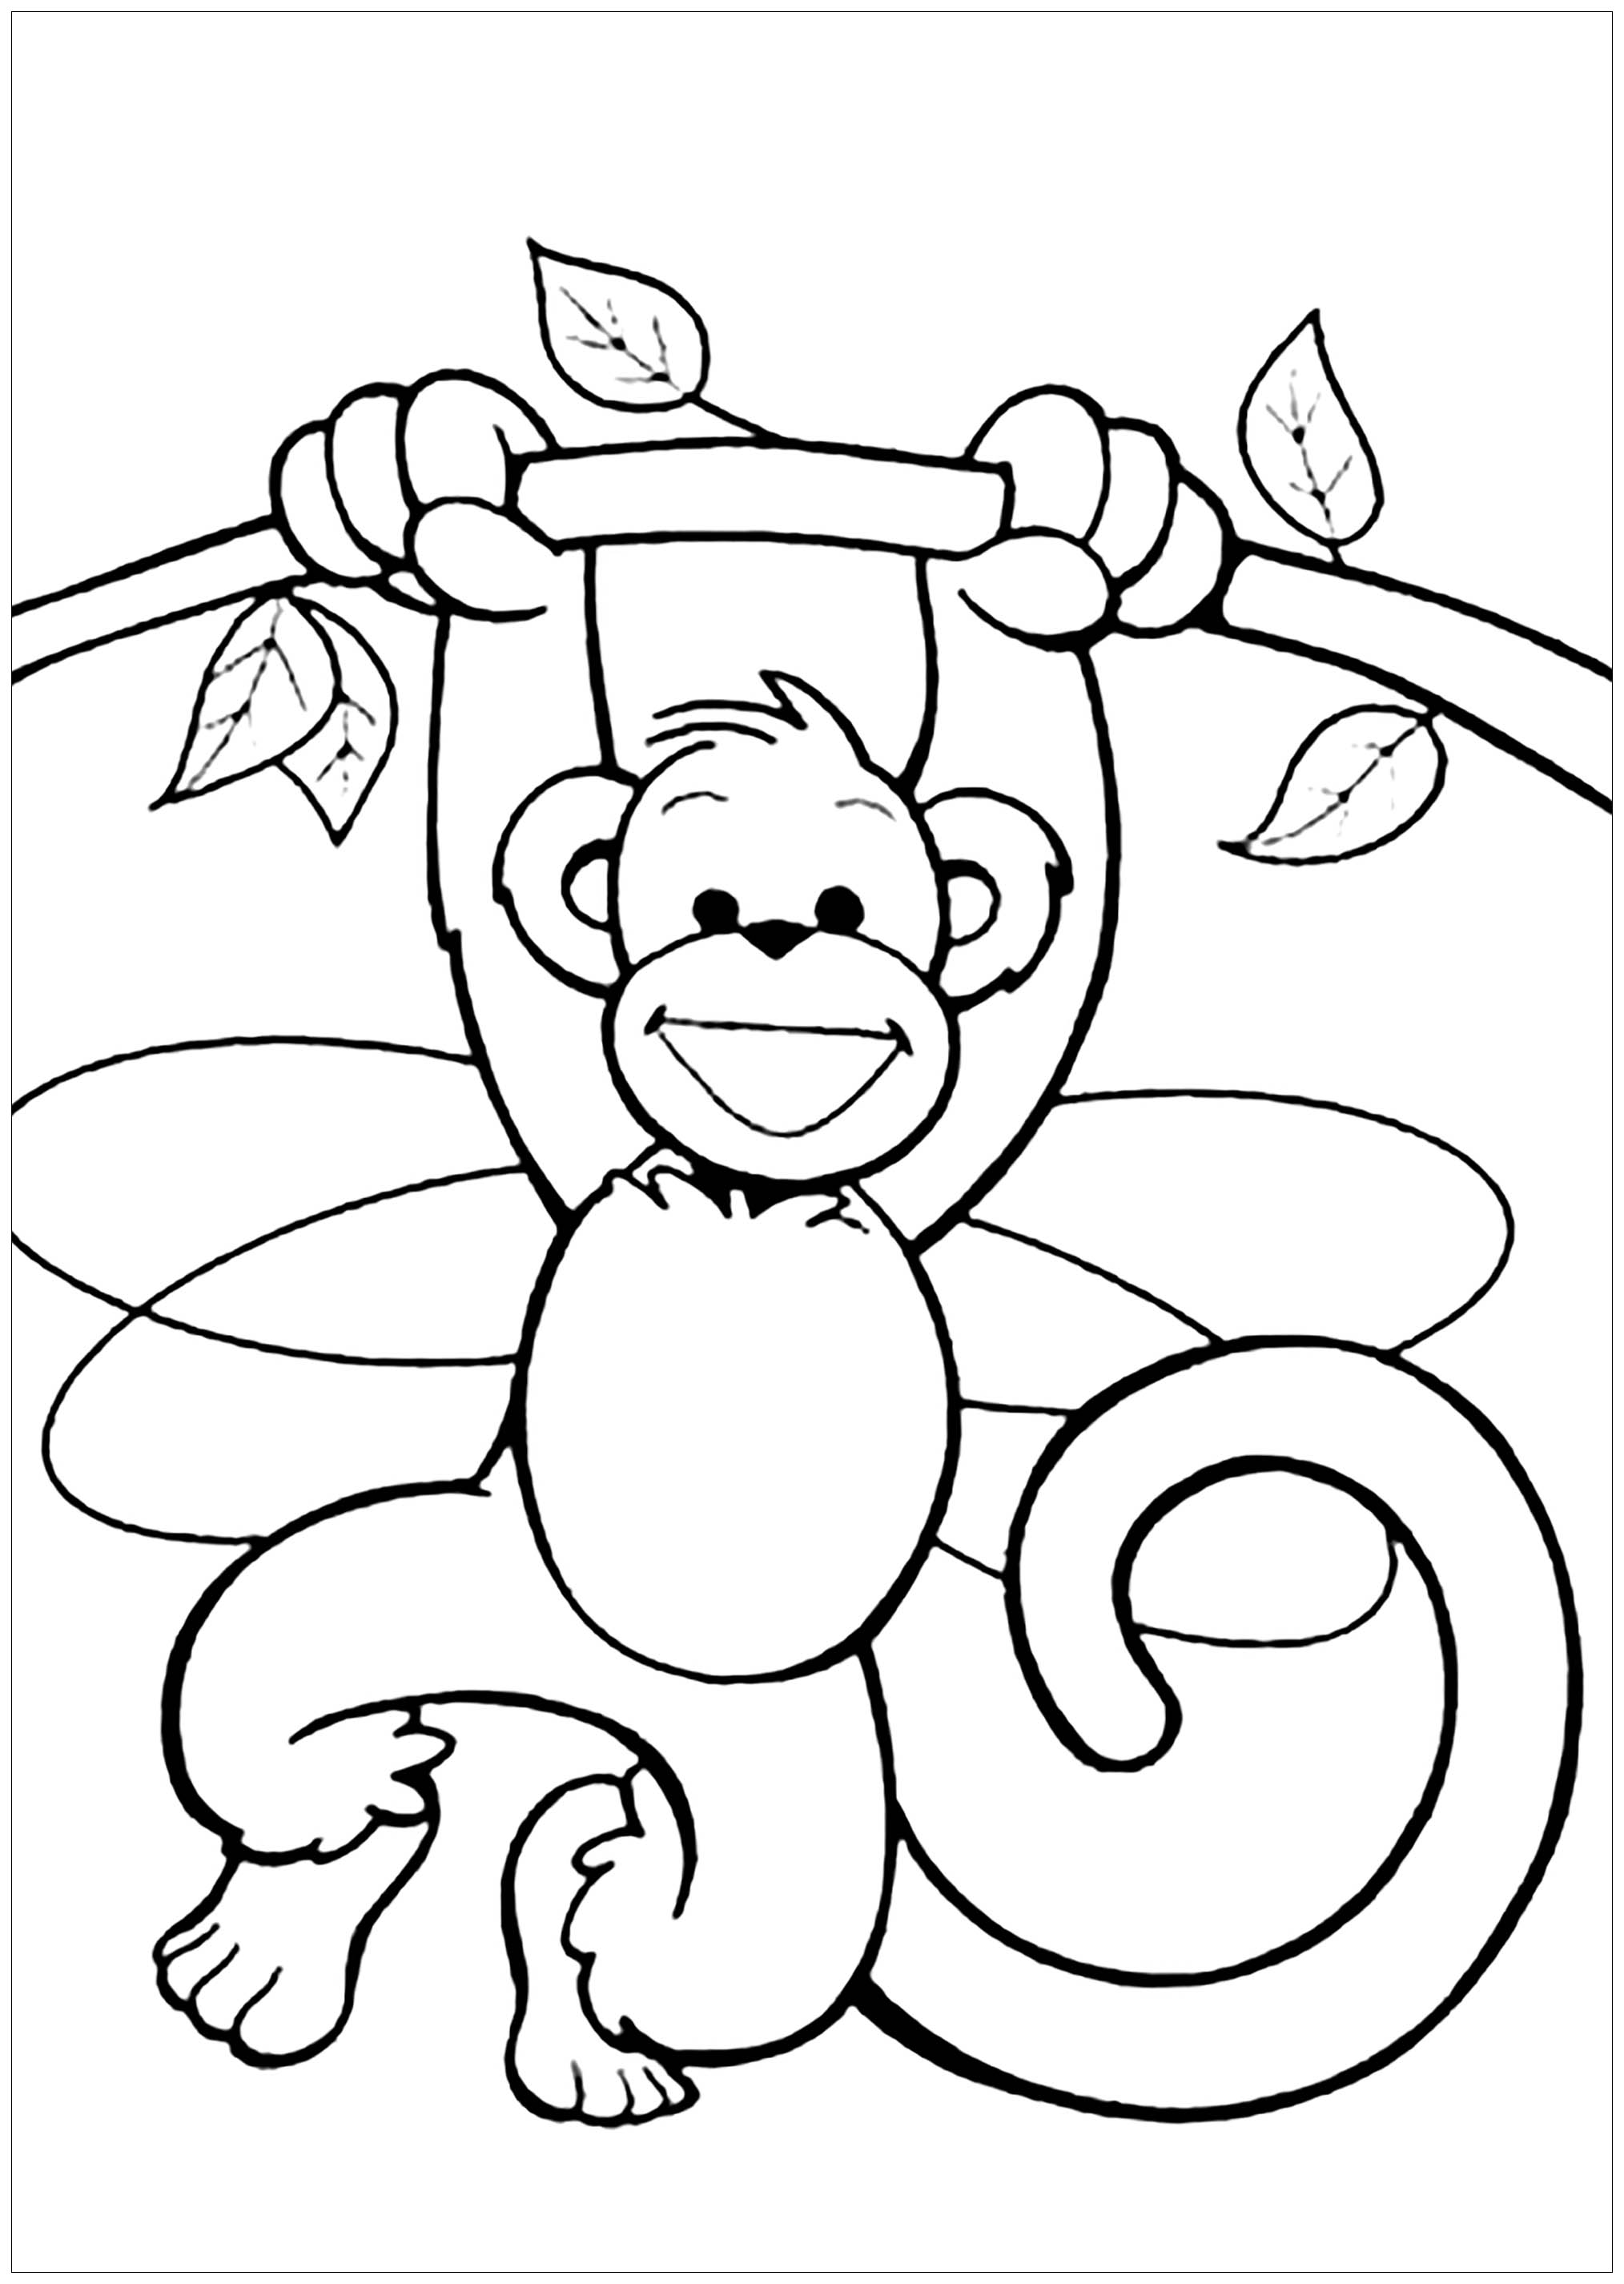 monkey pictures to color monkey coloring pages free download on clipartmag color pictures to monkey